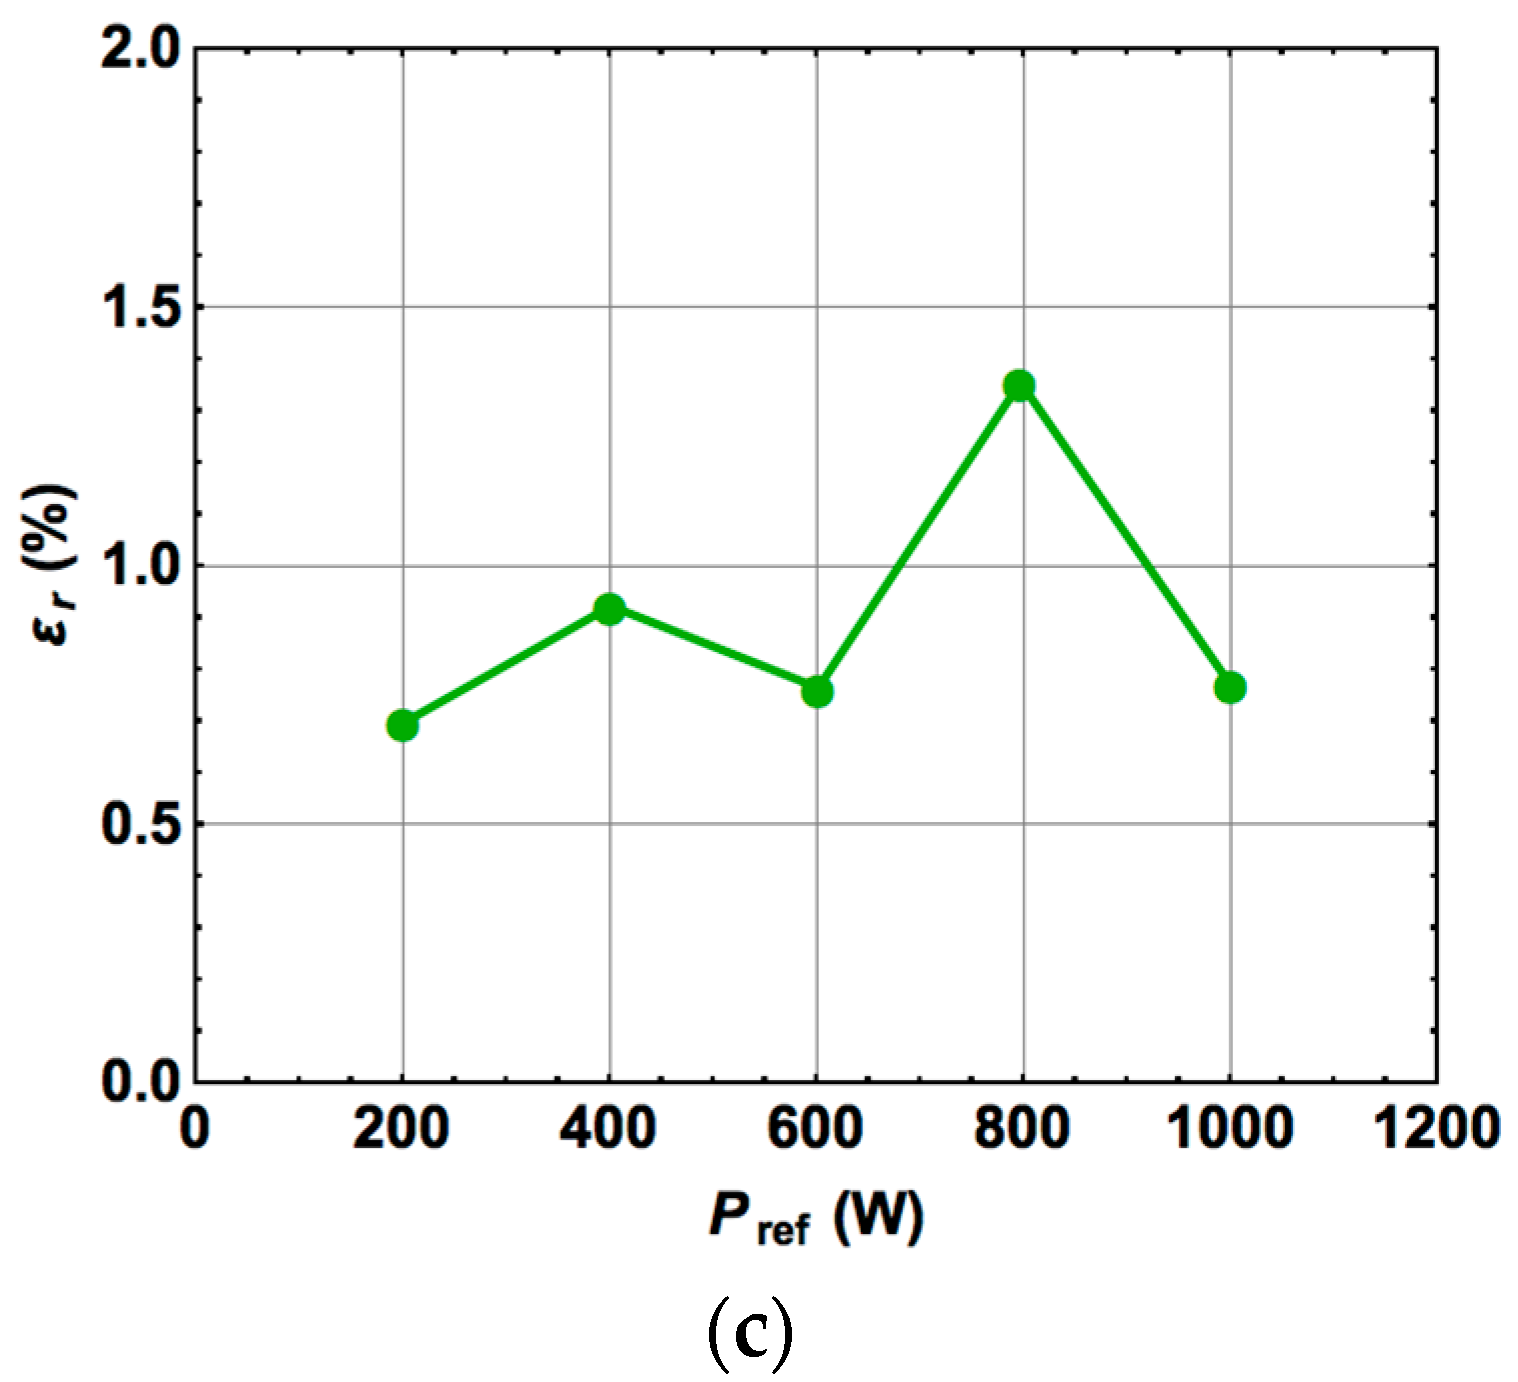 Materials Free Full Text Electronic Energy Meter Based On A Isolated Electric Bridge Measurement Amplifier Circuit Composed Of 10 01134 G010a G010b